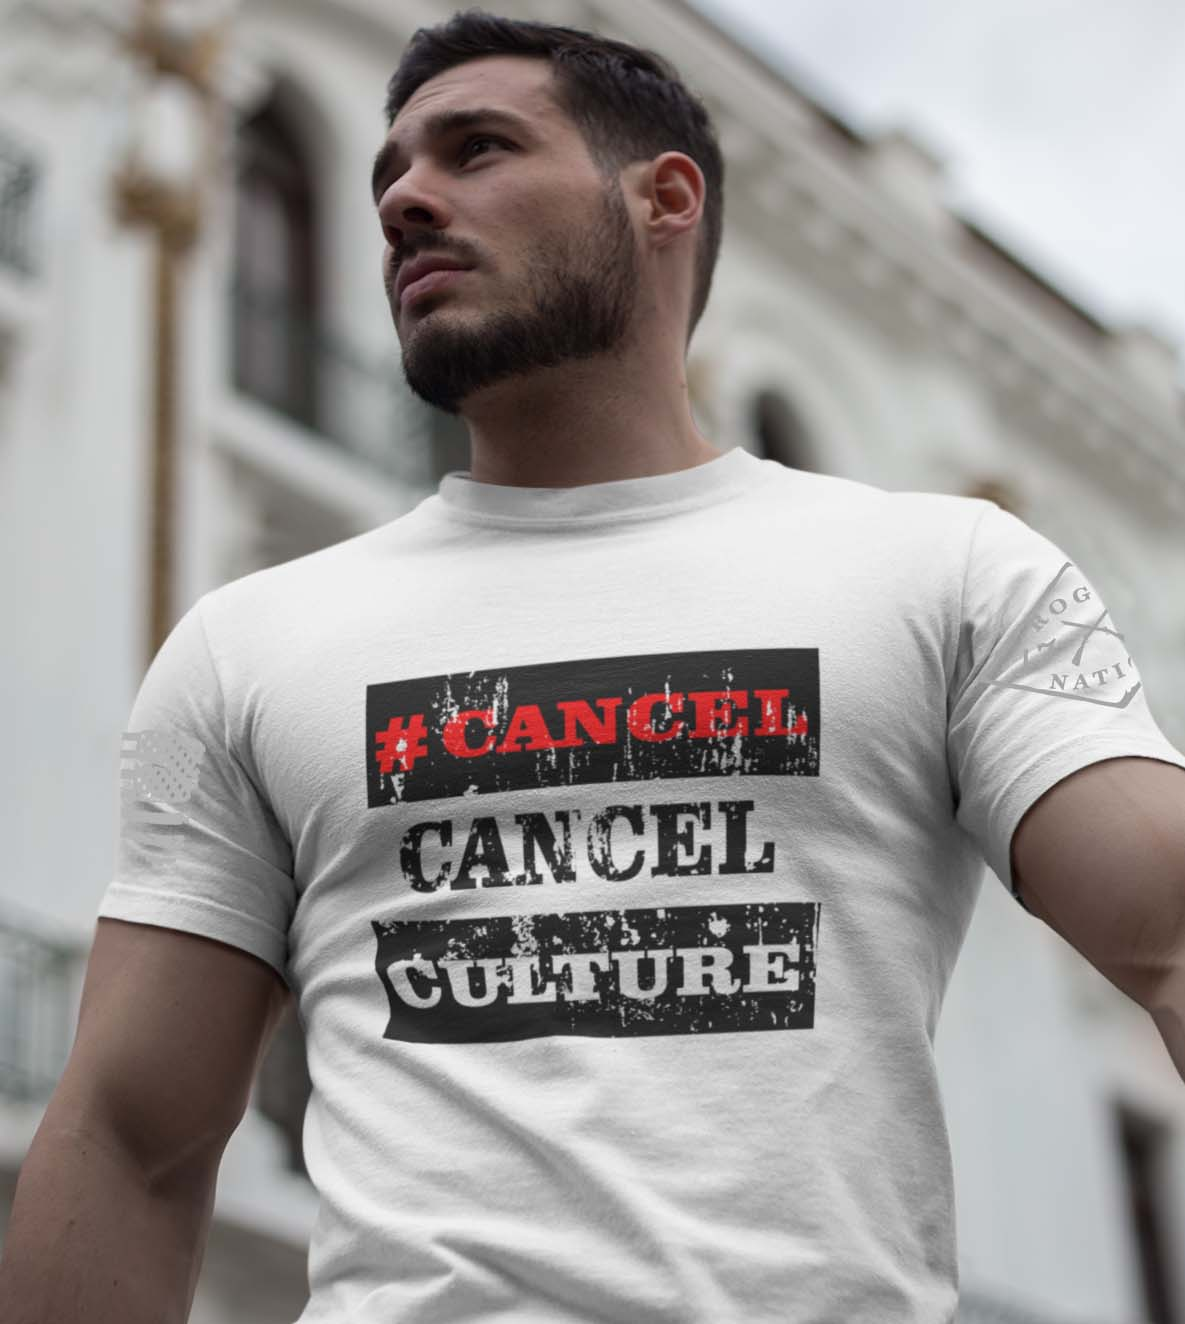 #Cancel Cancel Culture T-Shirt on Men's White T-Shirt